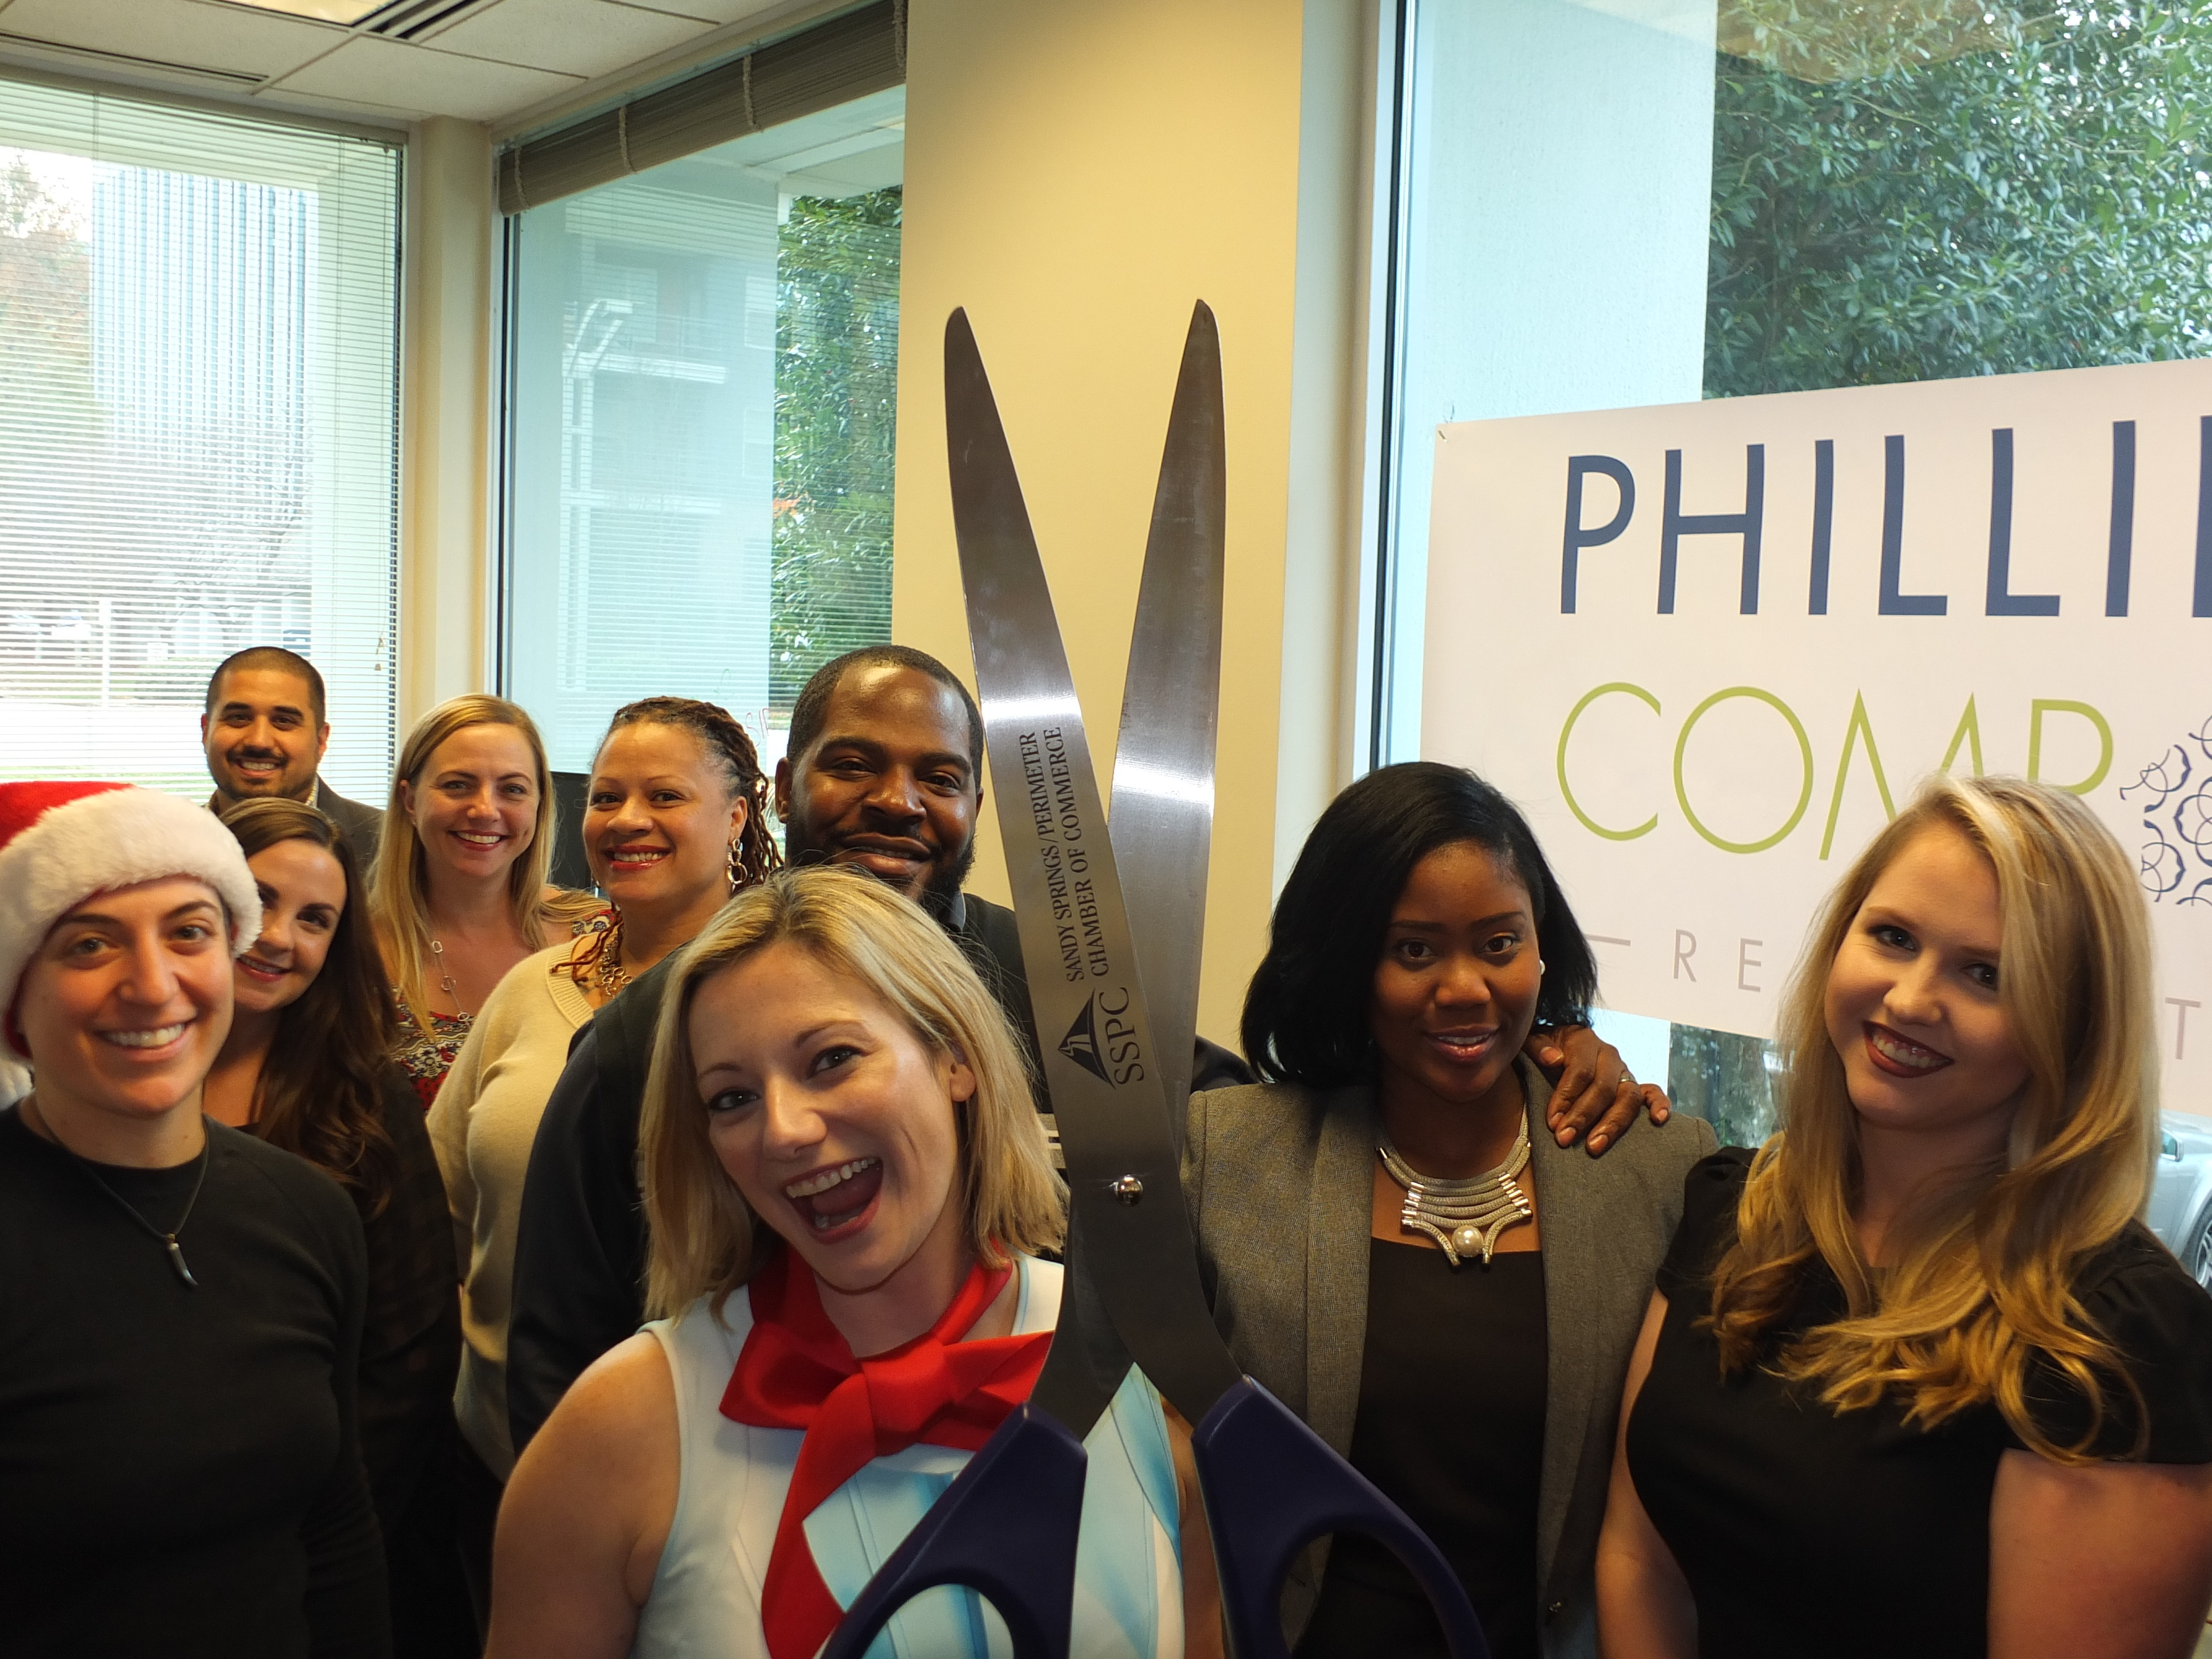 Phillips and Company Real Estate at Keller Williams